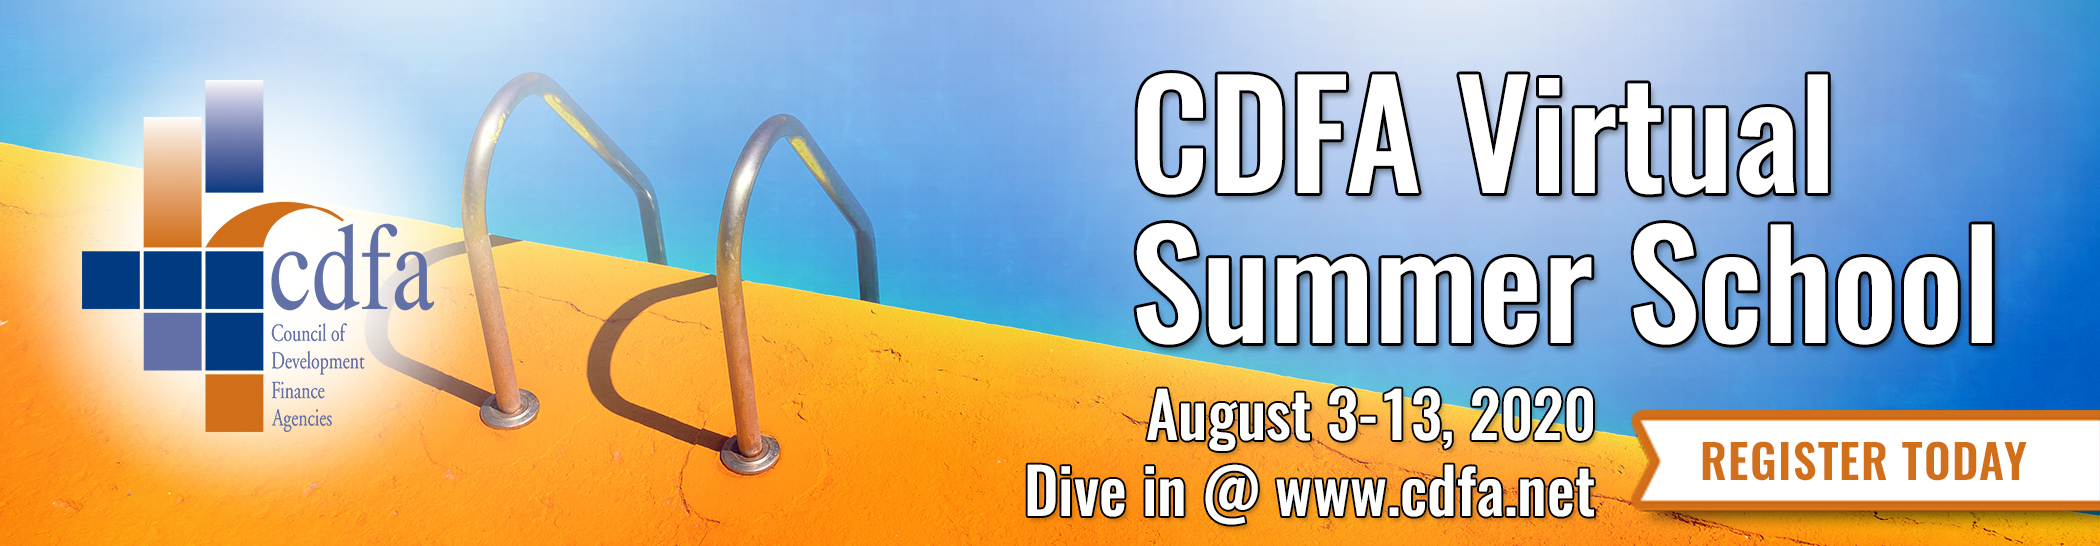 CDFA Virtual Summer School